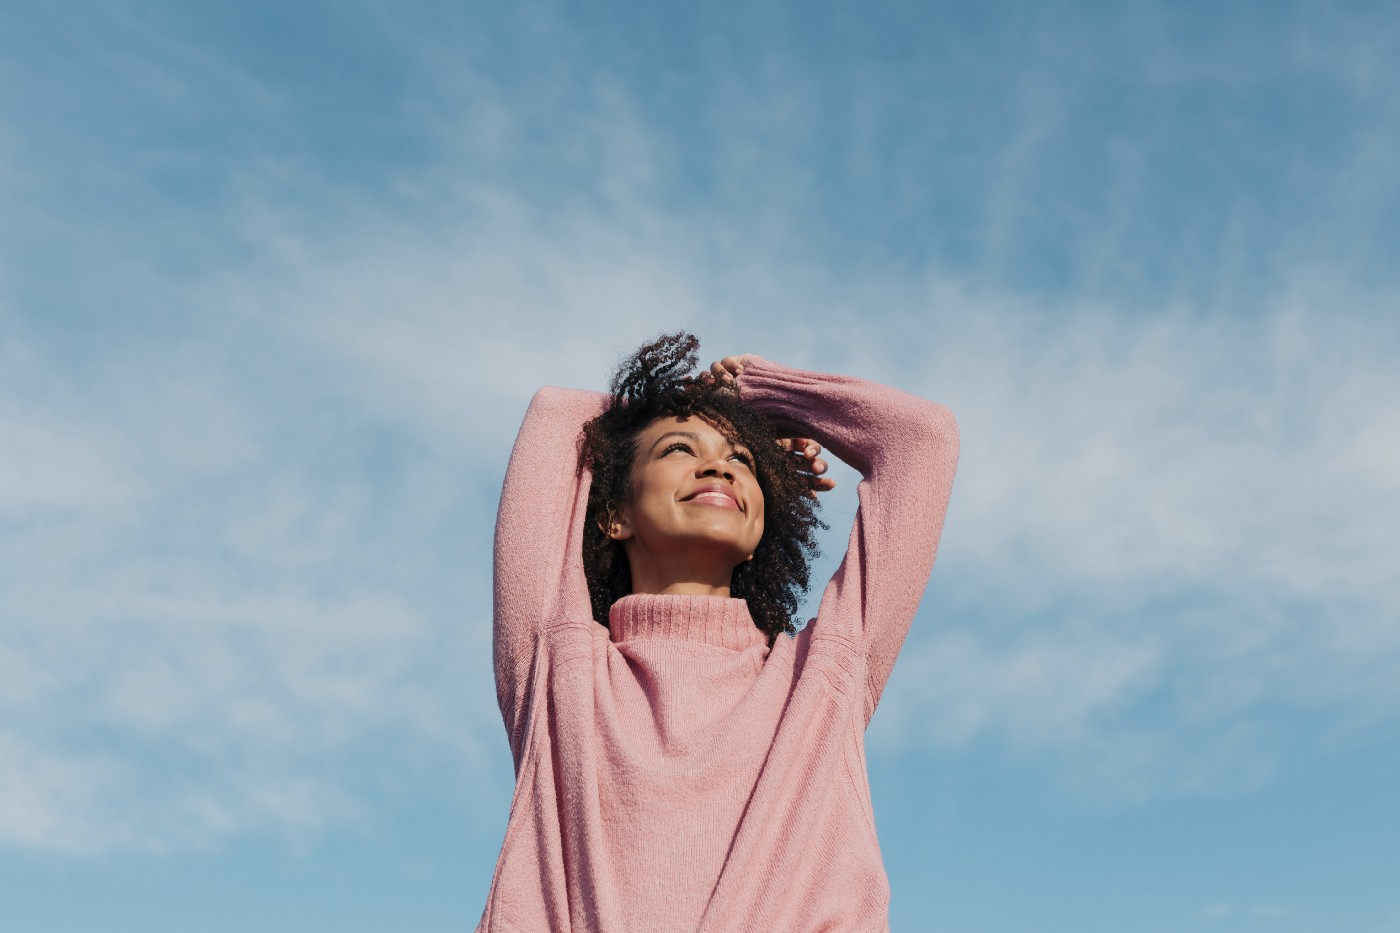 A portrait of a happy young woman enjoying the sunlight with the sky as a backdrop.